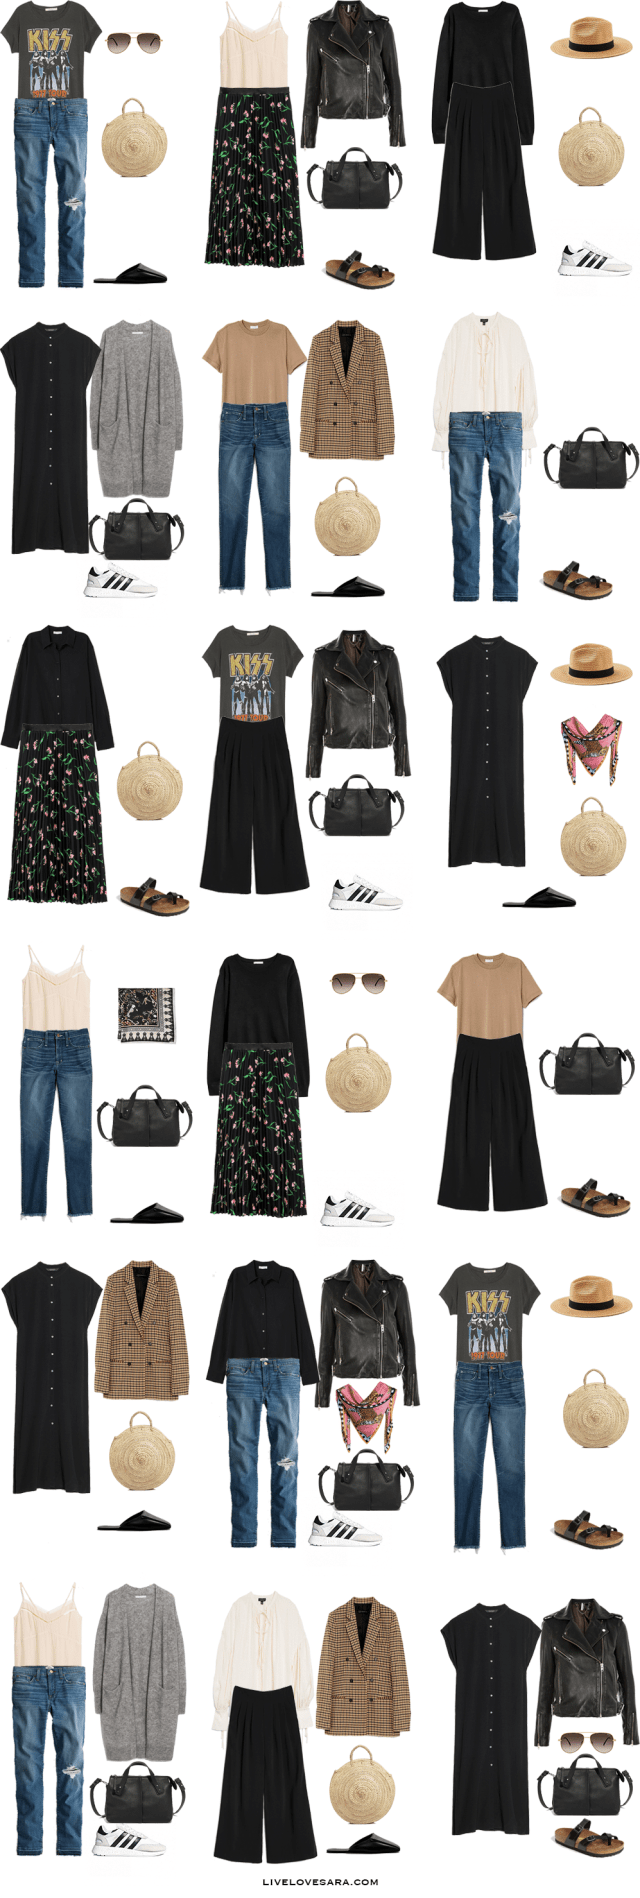 What to Pack for Copenhagen, Denmark Packing Light List | What to pack for Copenhagen | What to Pack for Denmark | Packing Light | Packing List | Travel Light | Travel Wardrobe | Travel Capsule | Capsule | #travelwardrobesummer